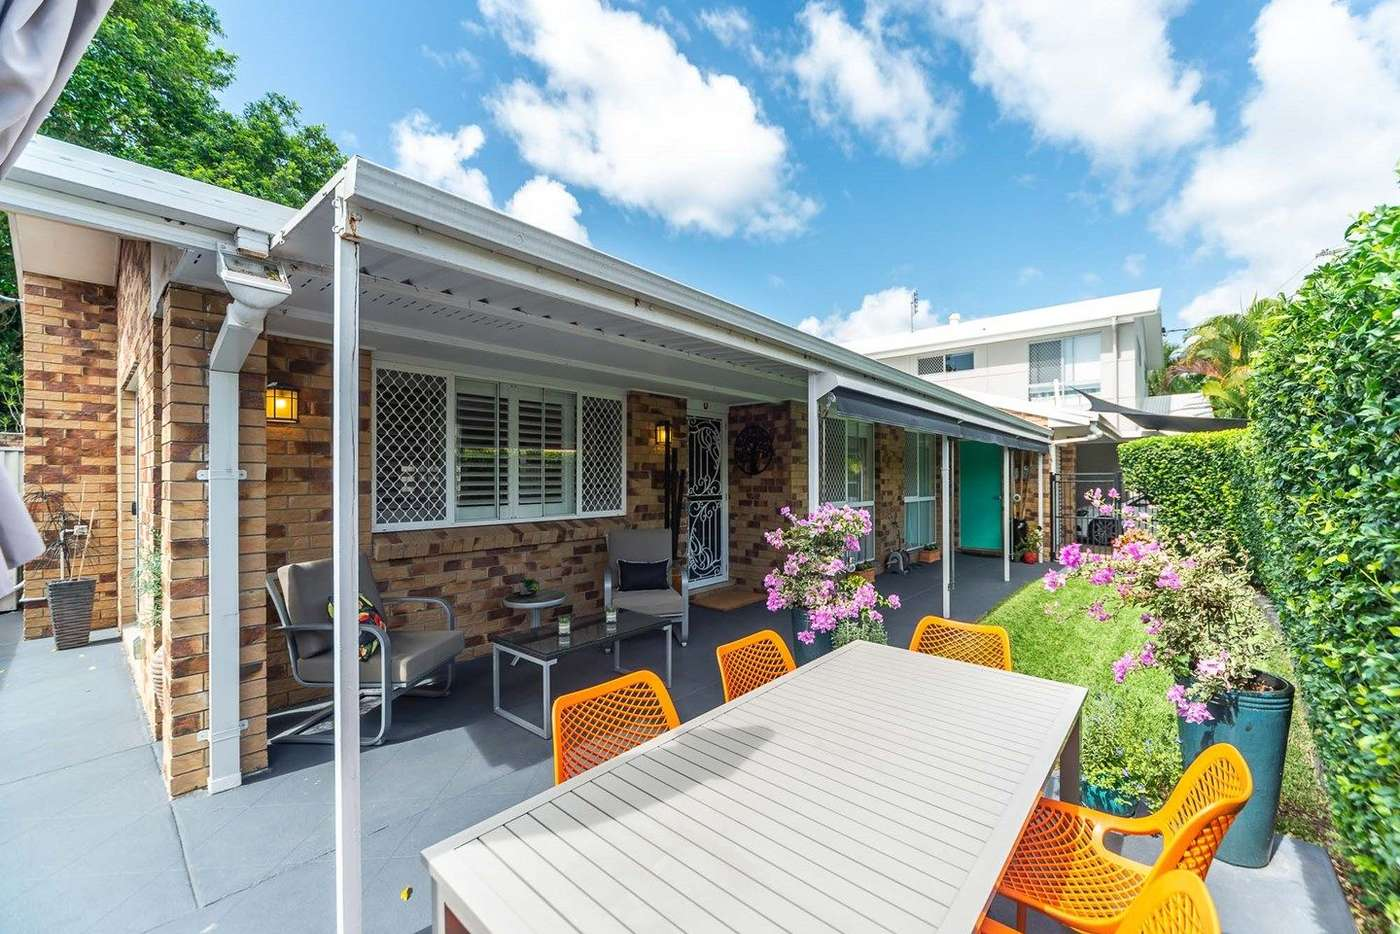 Main view of Homely house listing, 1/5 Rosalind Ave, Paradise Point QLD 4216